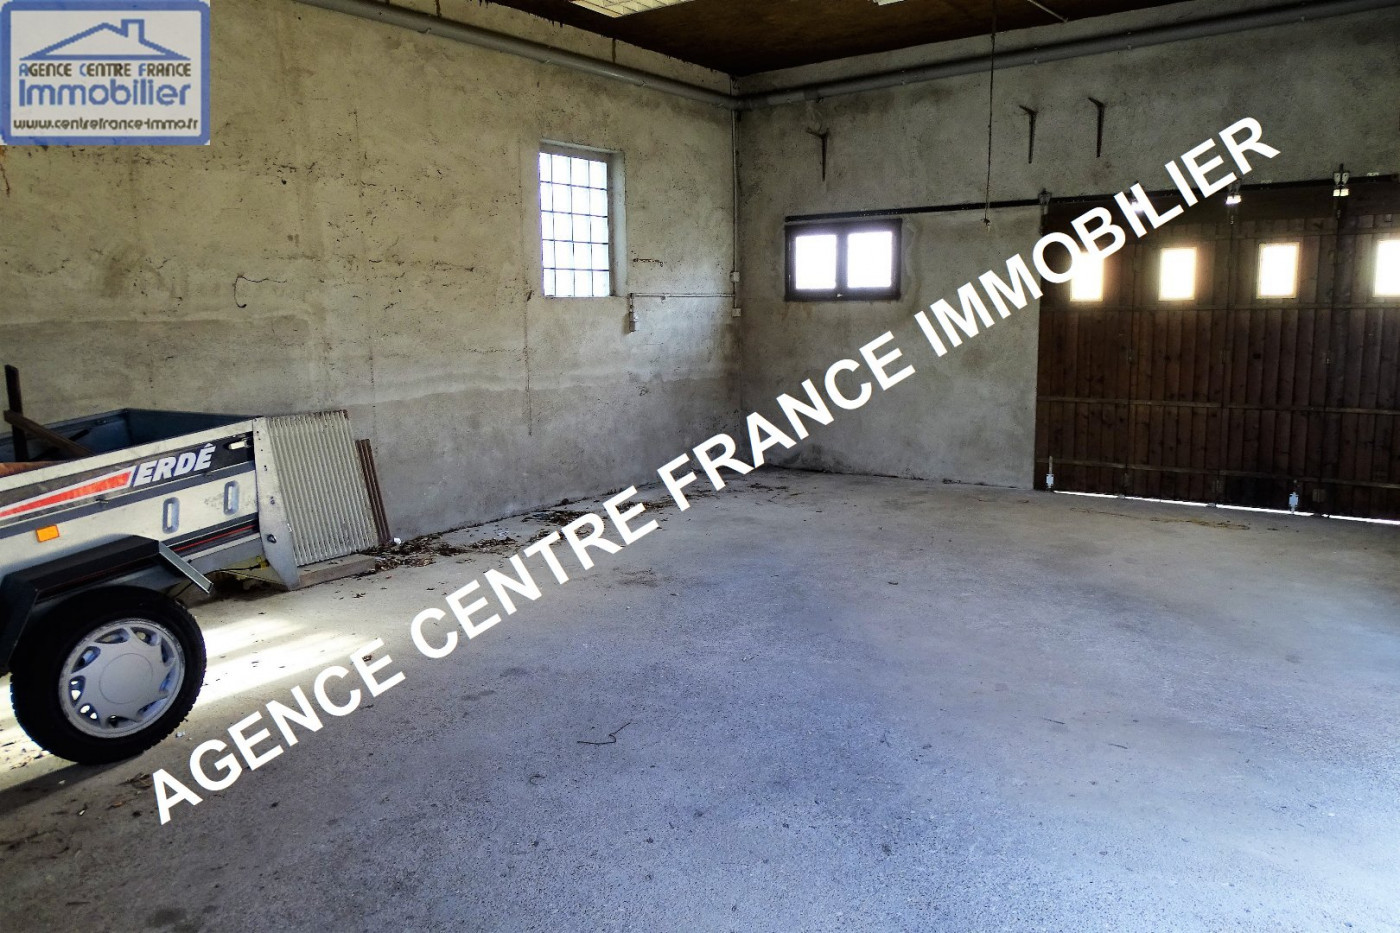 A vendre Bourges 03001802 Agence centre france immobilier